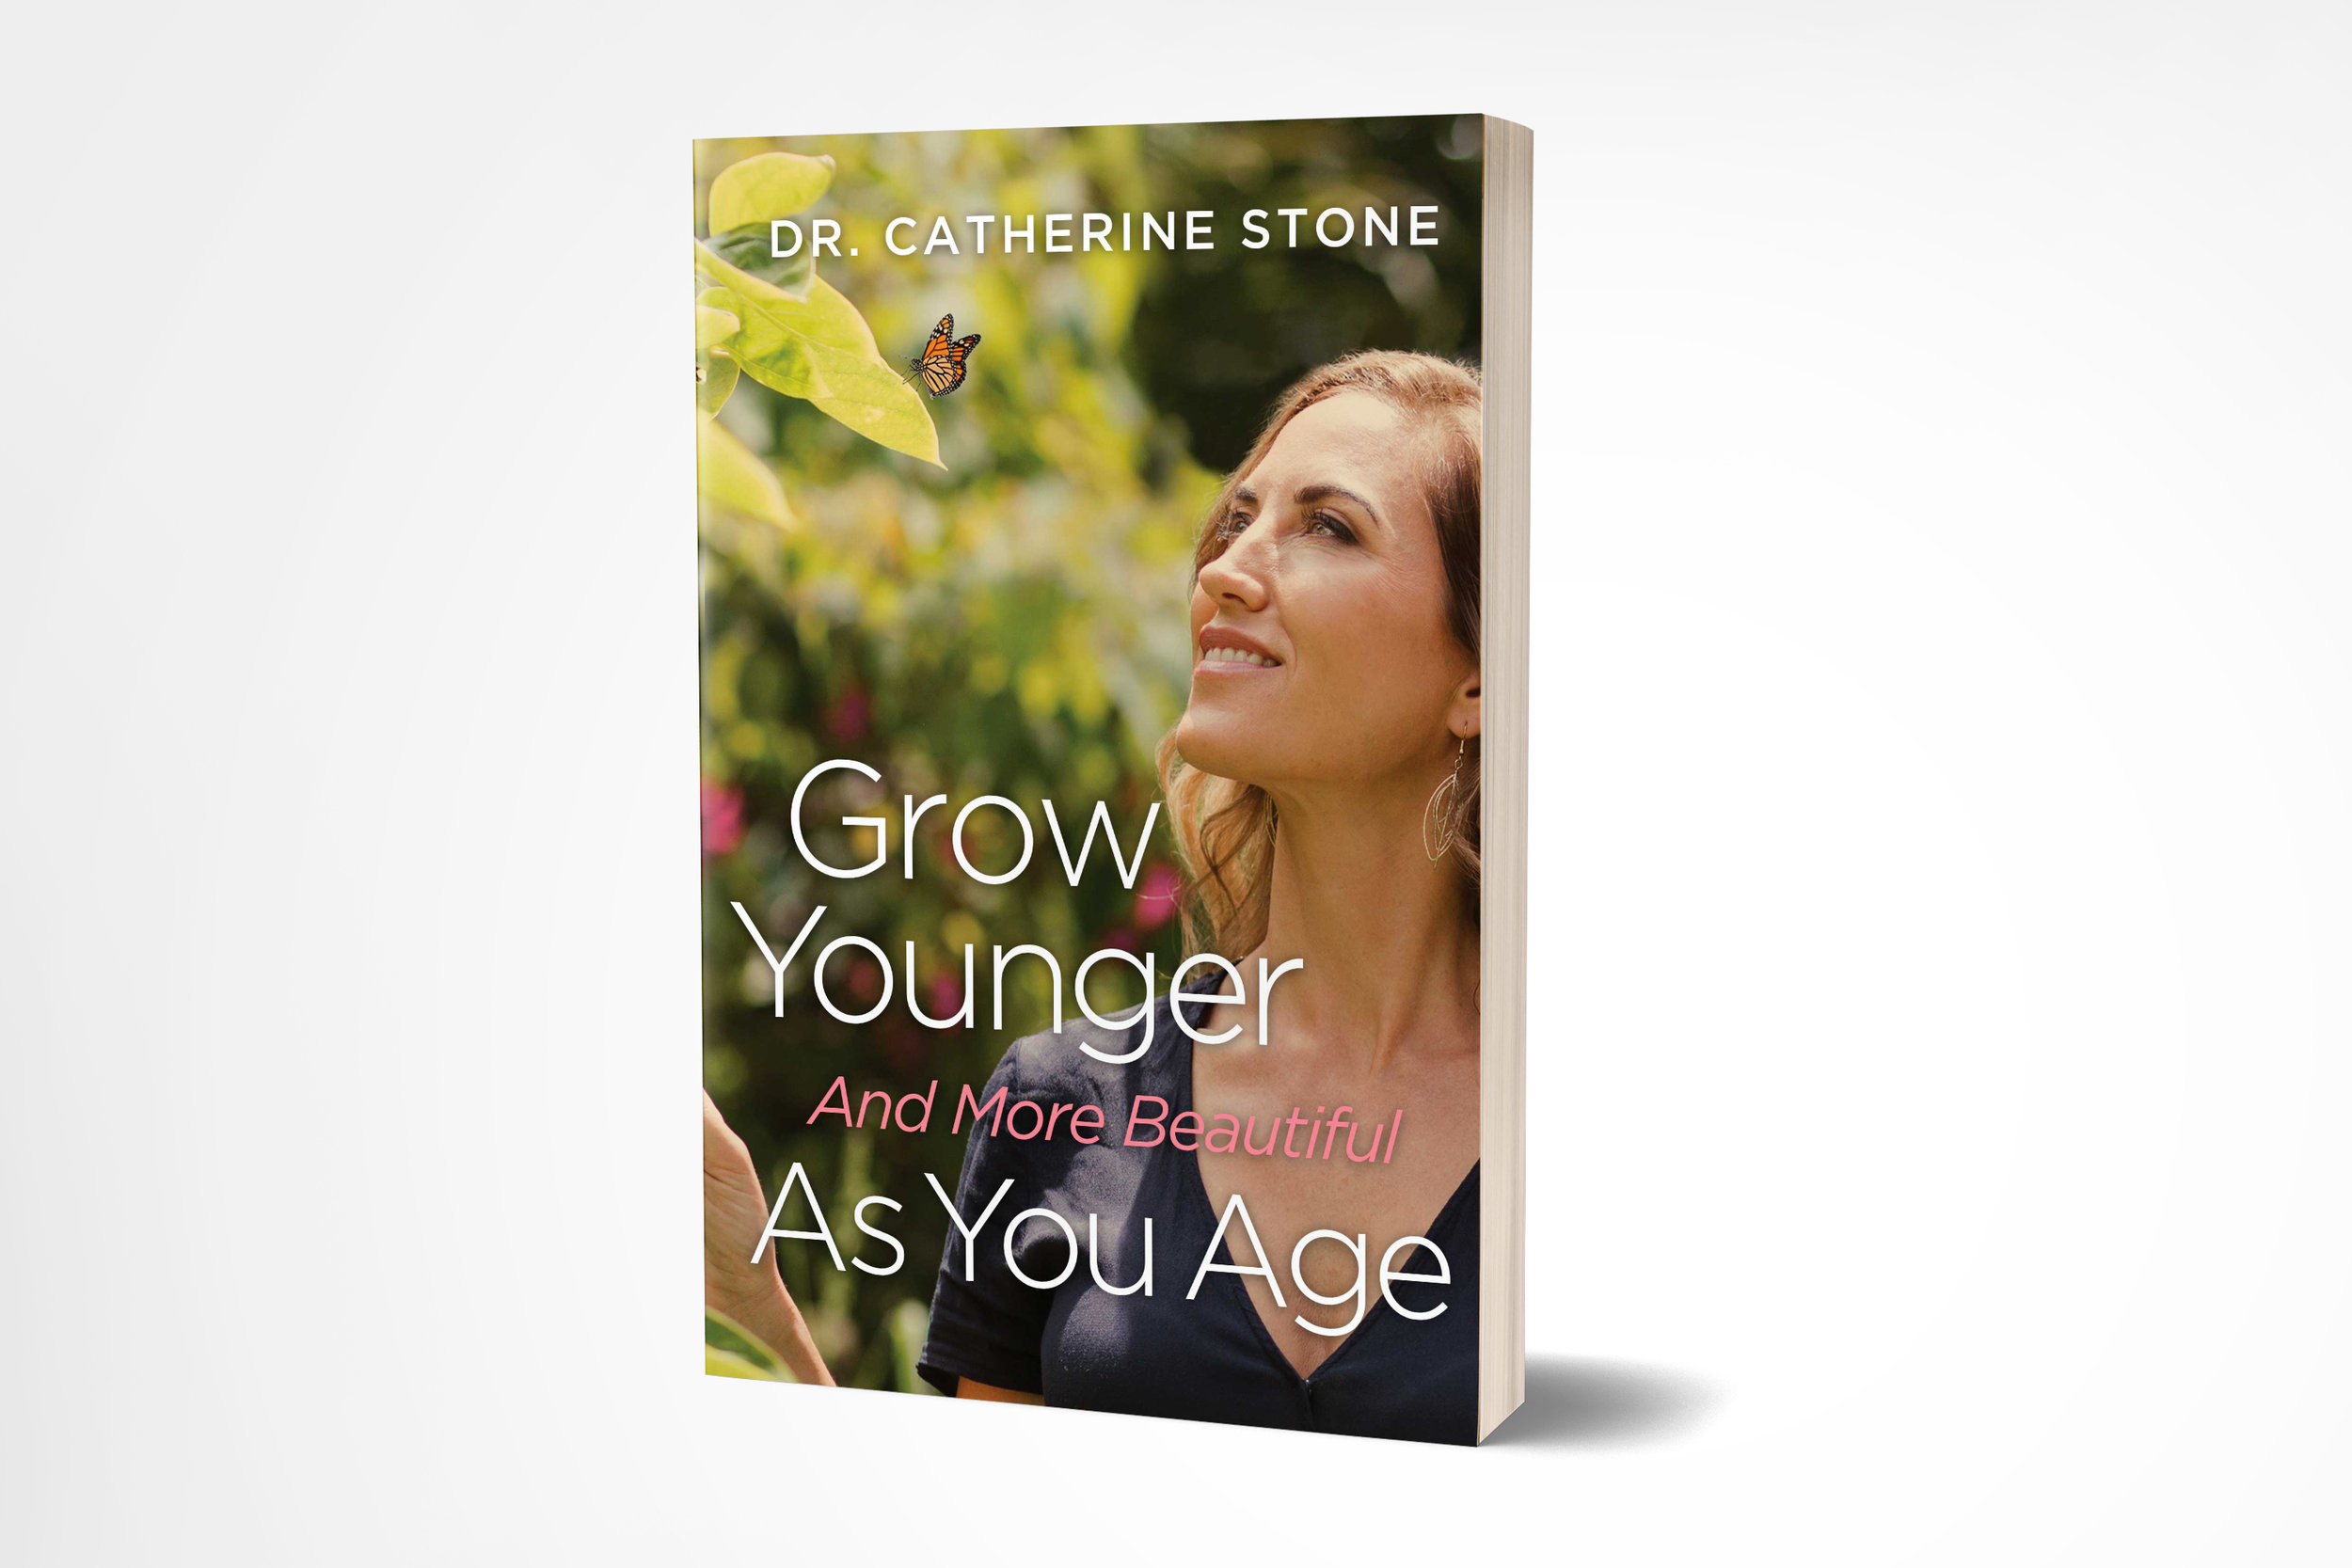 Grow Younger and More Beautiful as you age 1.4mb (1) (1).jpg.jpeg